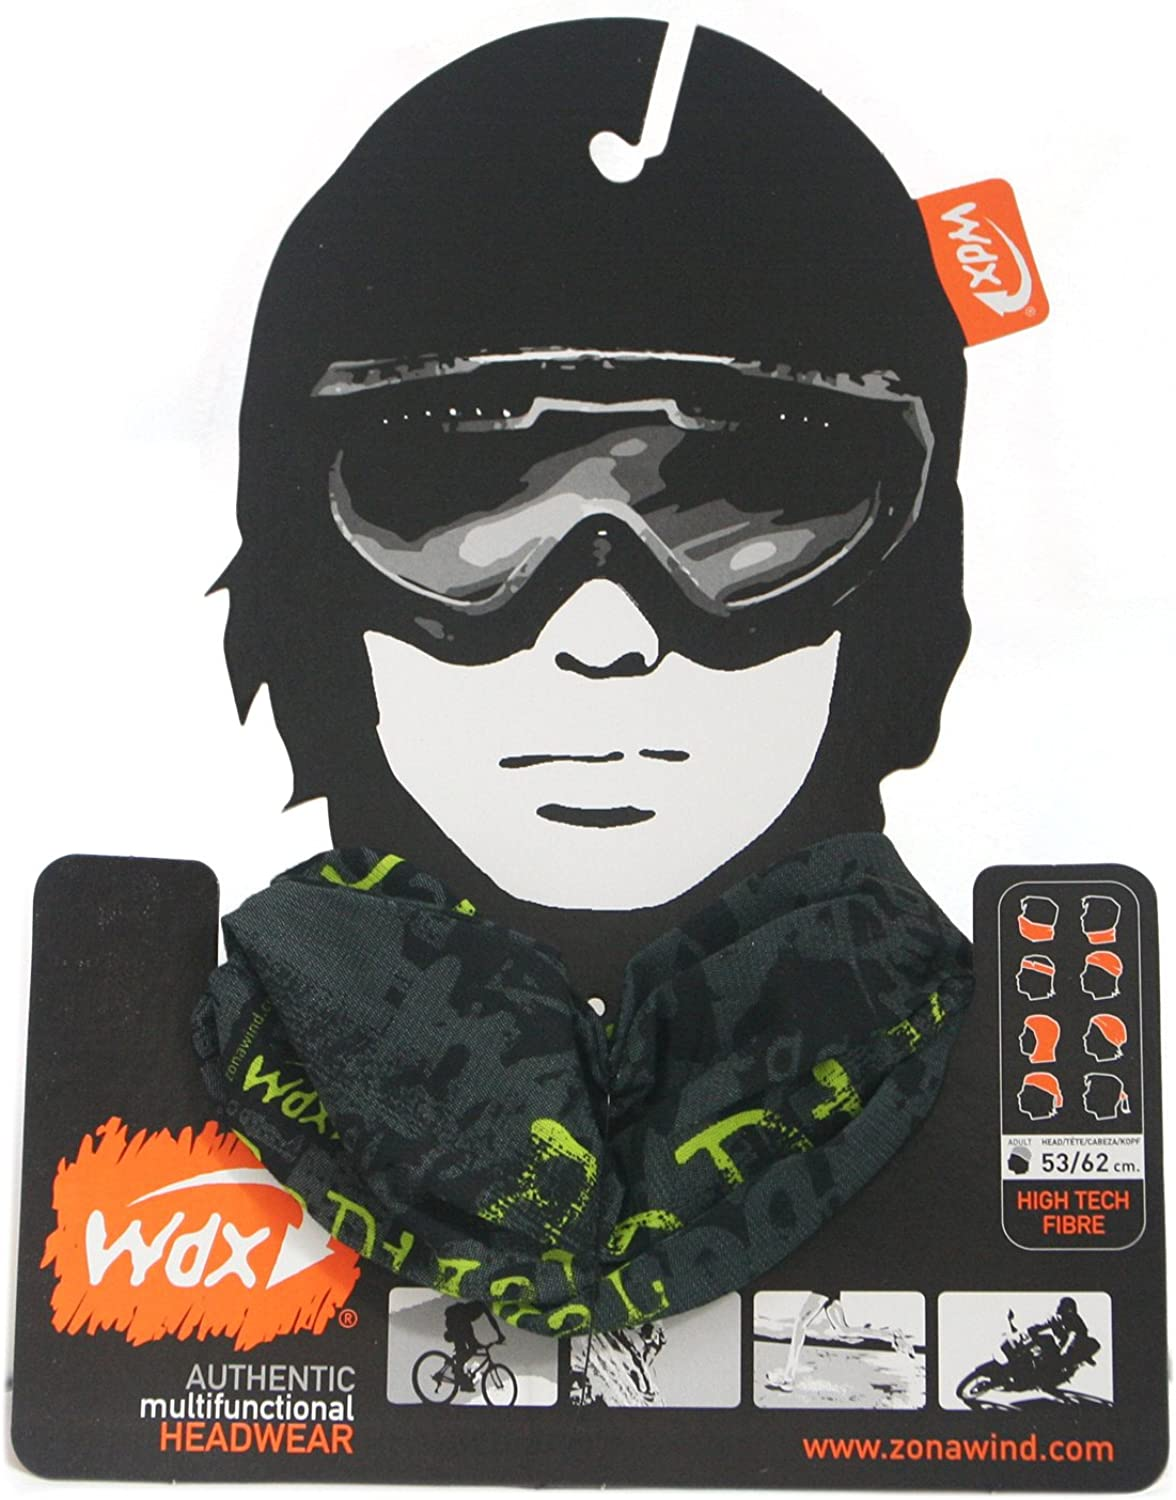 Drytex UV Protection Wind x-treme Barcelona Coolwind Odor Free Headwear Bandana Moisture Control Flexible and Seamless